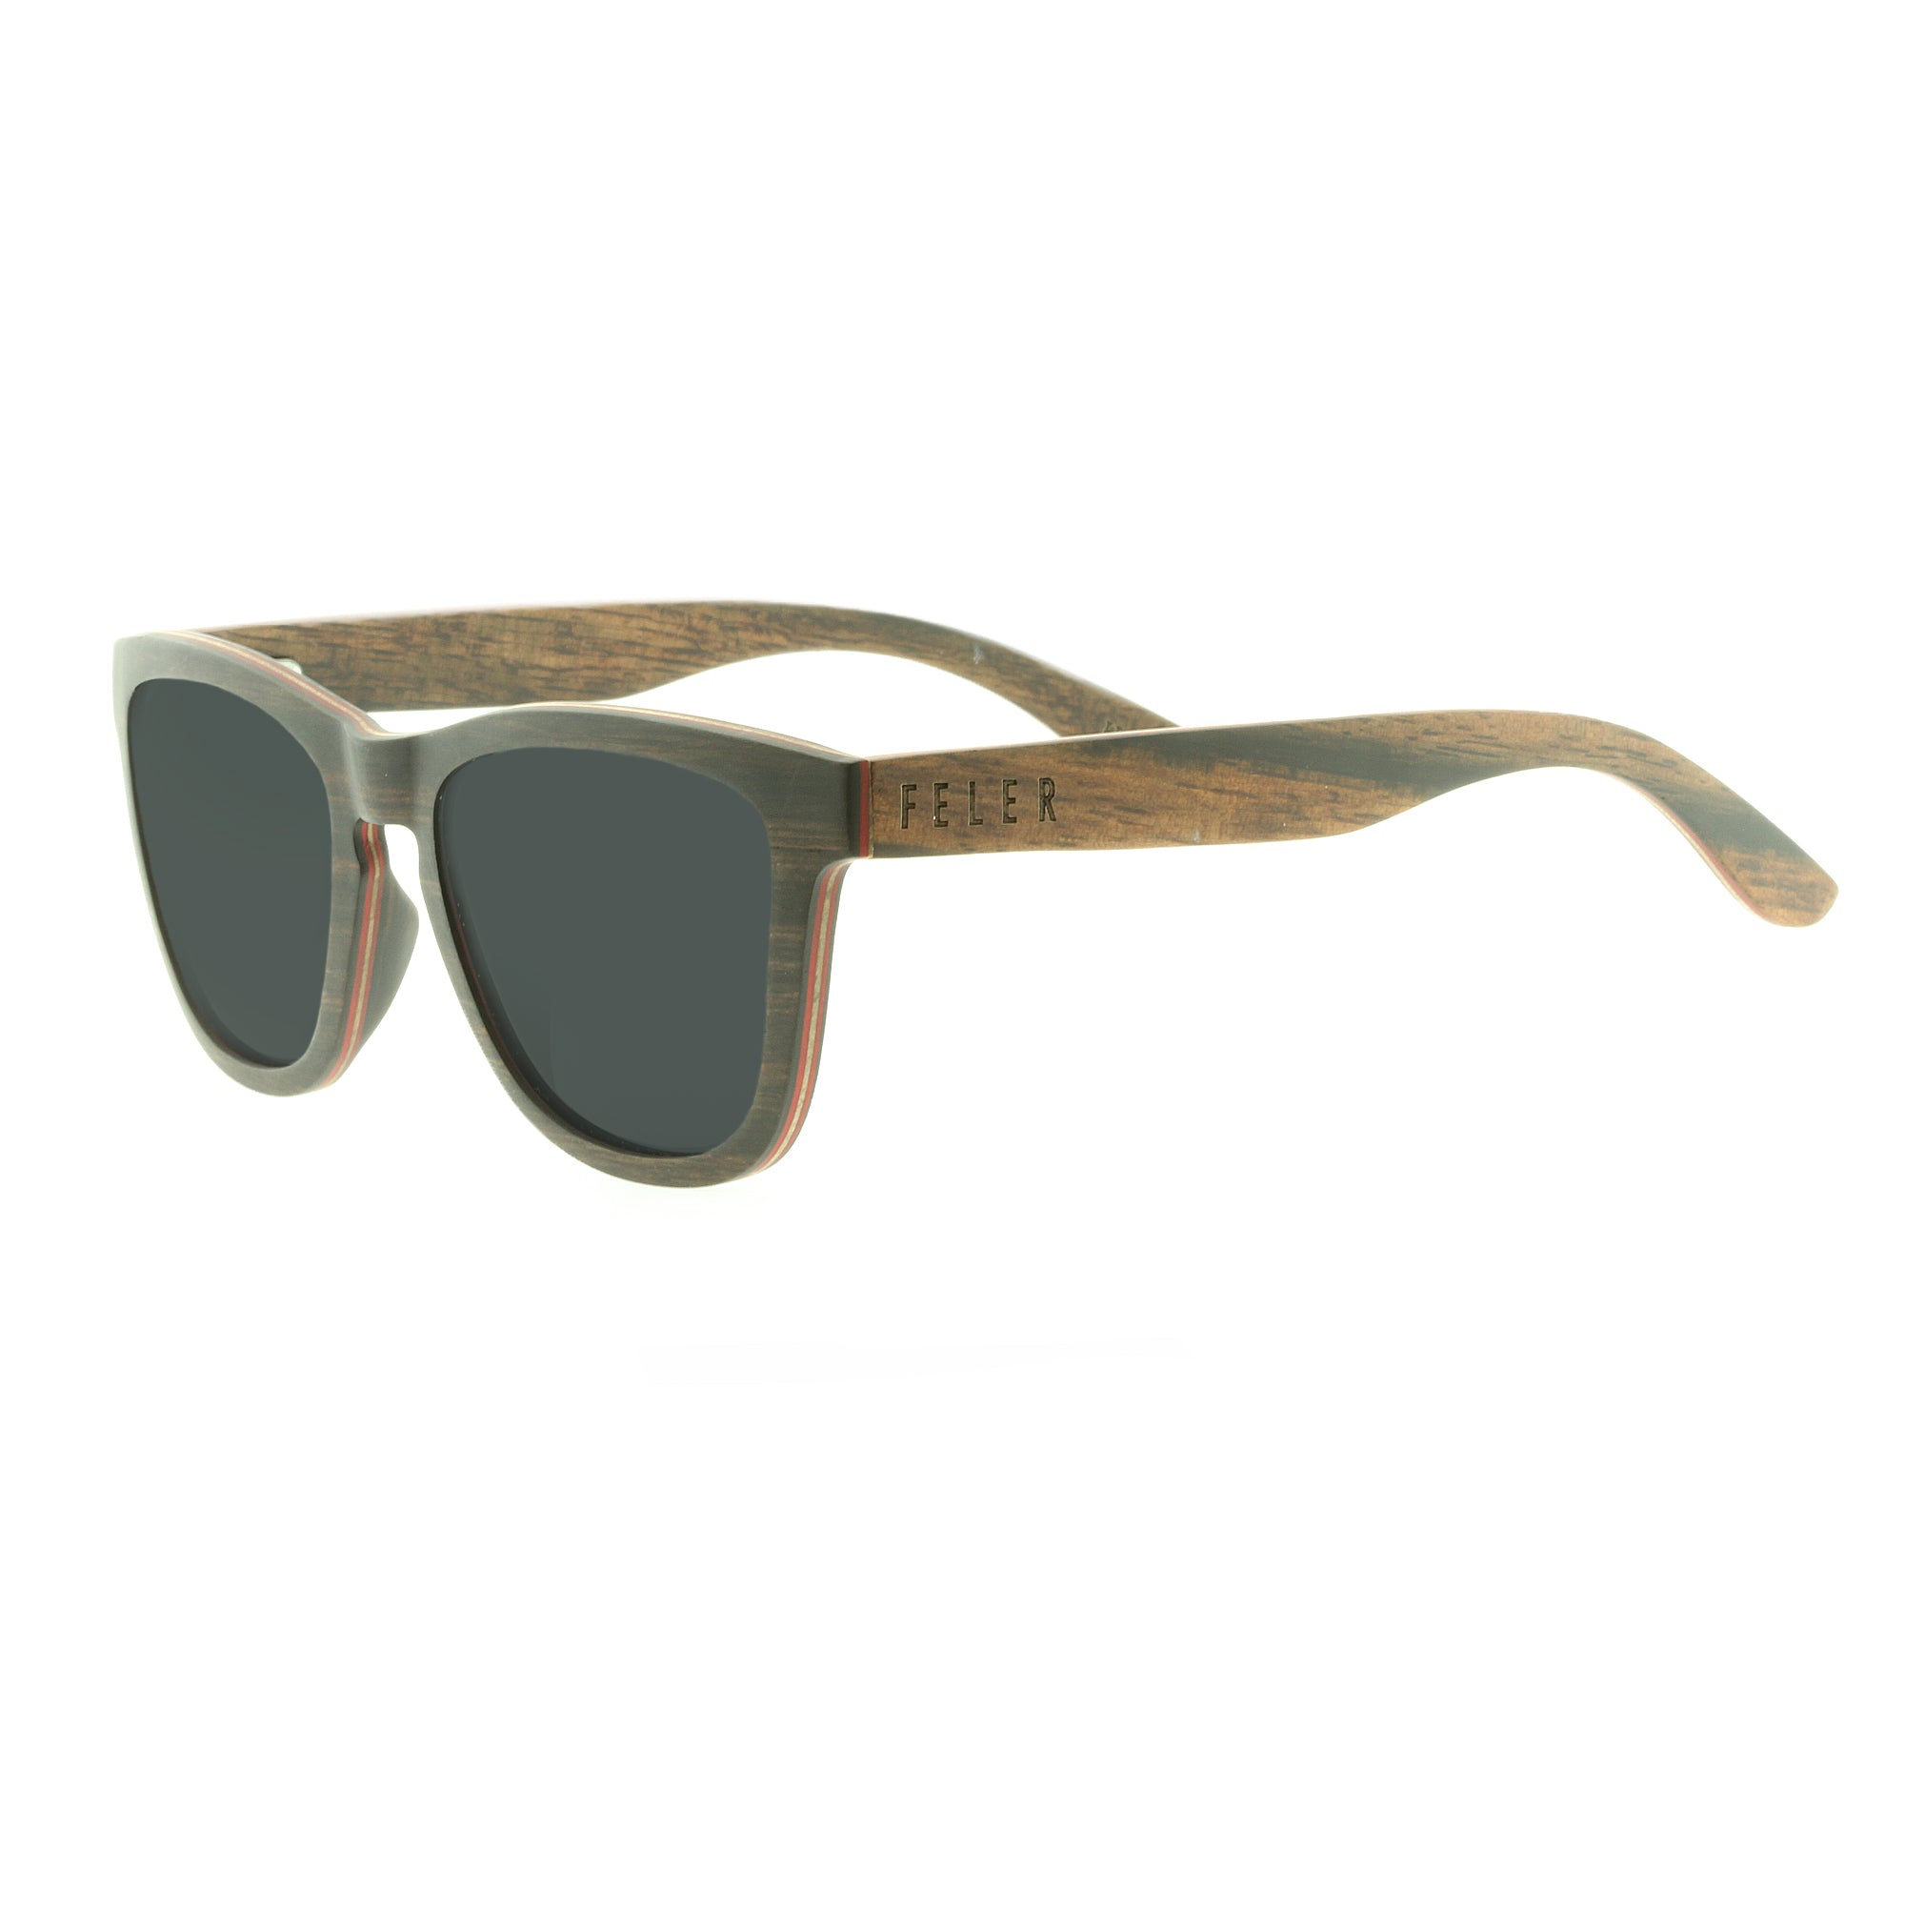 6dbae350a3 Regular Wood Ebony - Gafas de sol - Feler Sunglasses